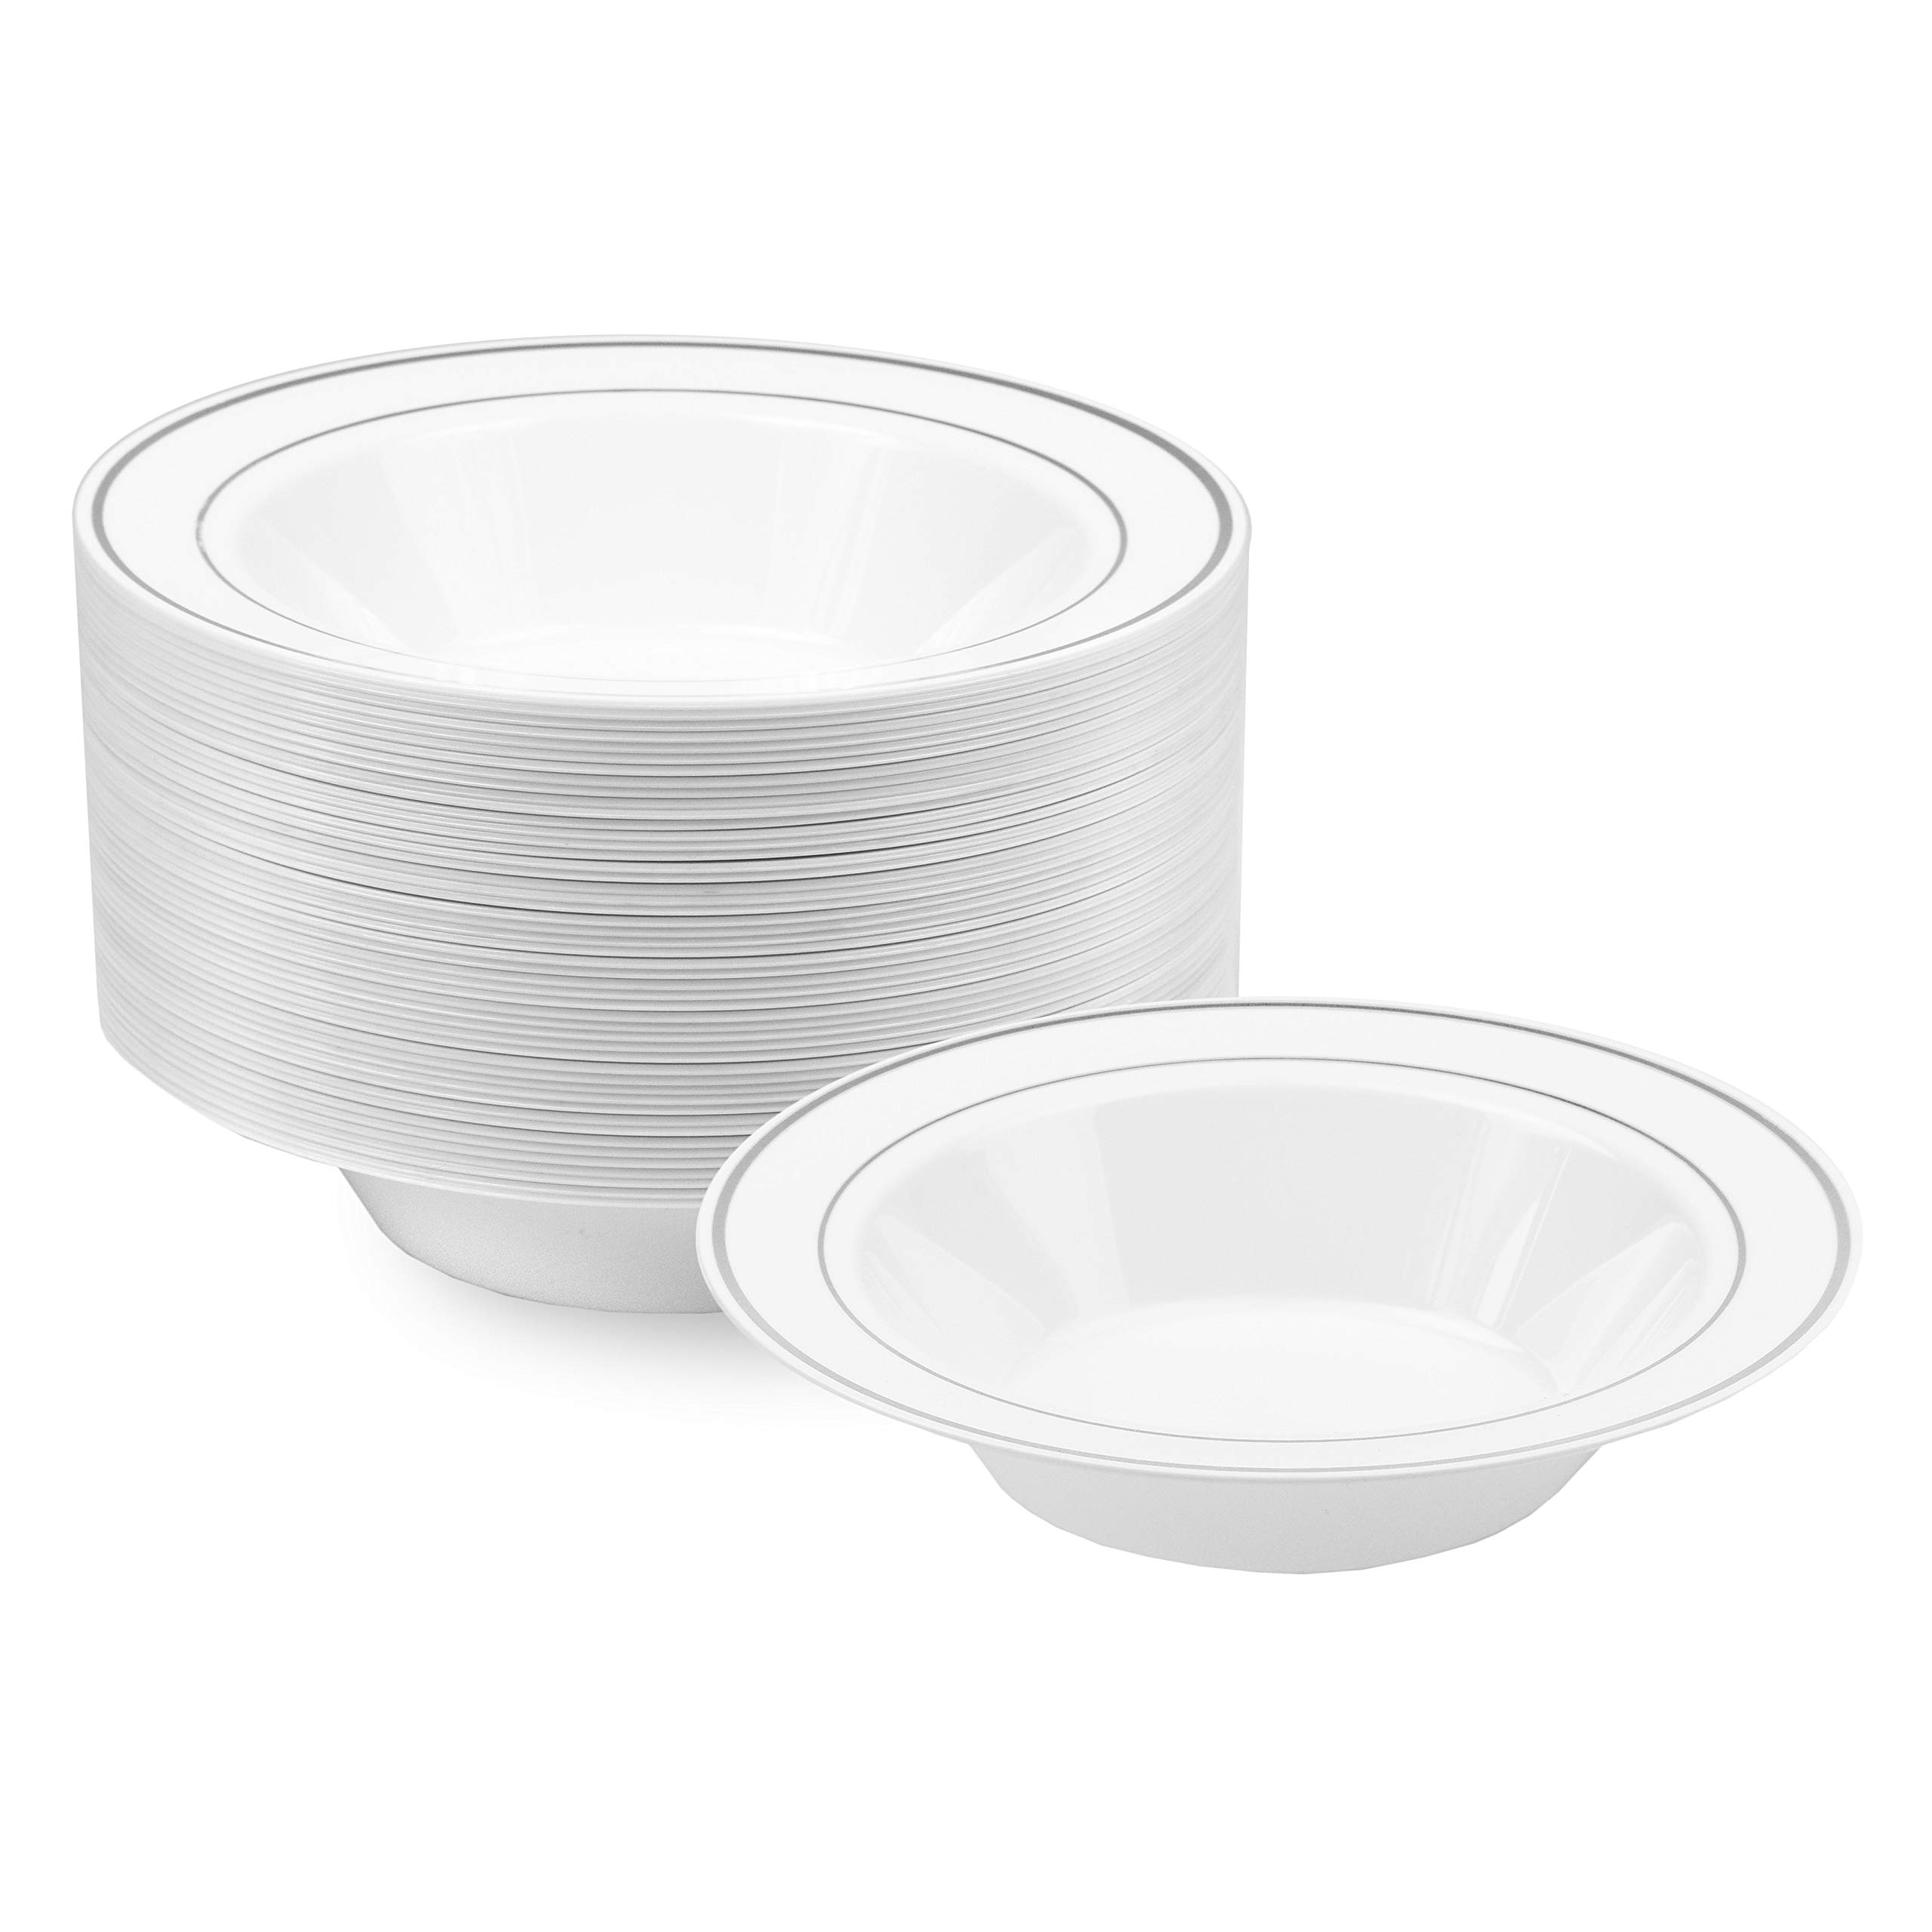 NYHI Plastic Disposable Soup Bowls (14 ounces) | Single Use Recyclable Dinnerware for Household, Restaurant, Weddings & Parties | BPA-free, Durable, Heat-Resistant Soup Plate & Salad Bowl| 50 Pack by NYHI